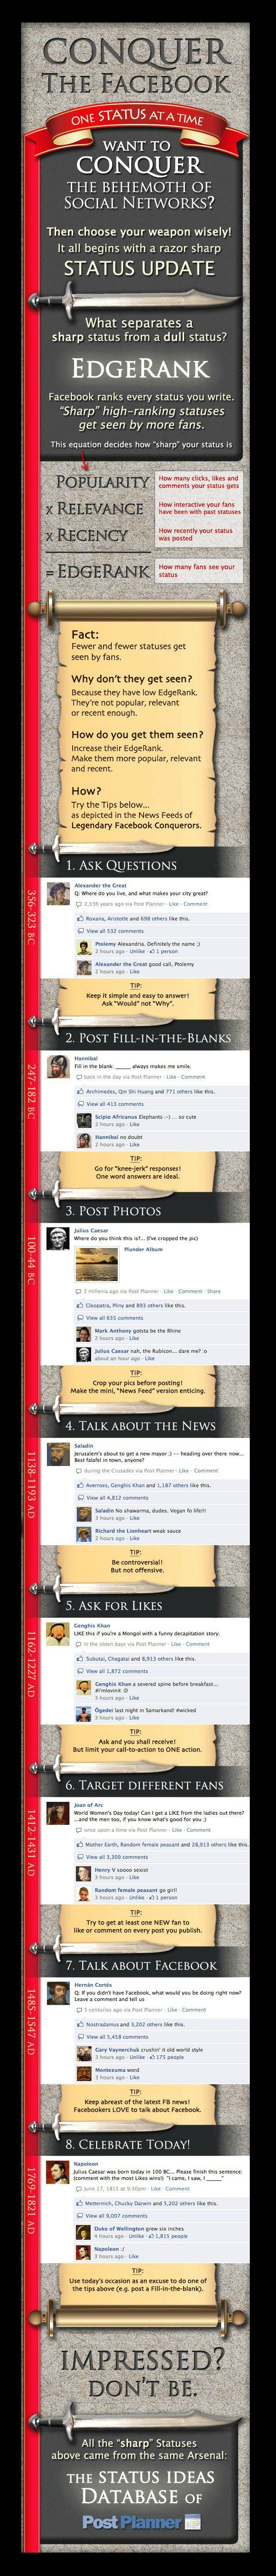 8 tips for improving your Facebook EdgeRank #social media #Facebook #Facebook EdgeRank